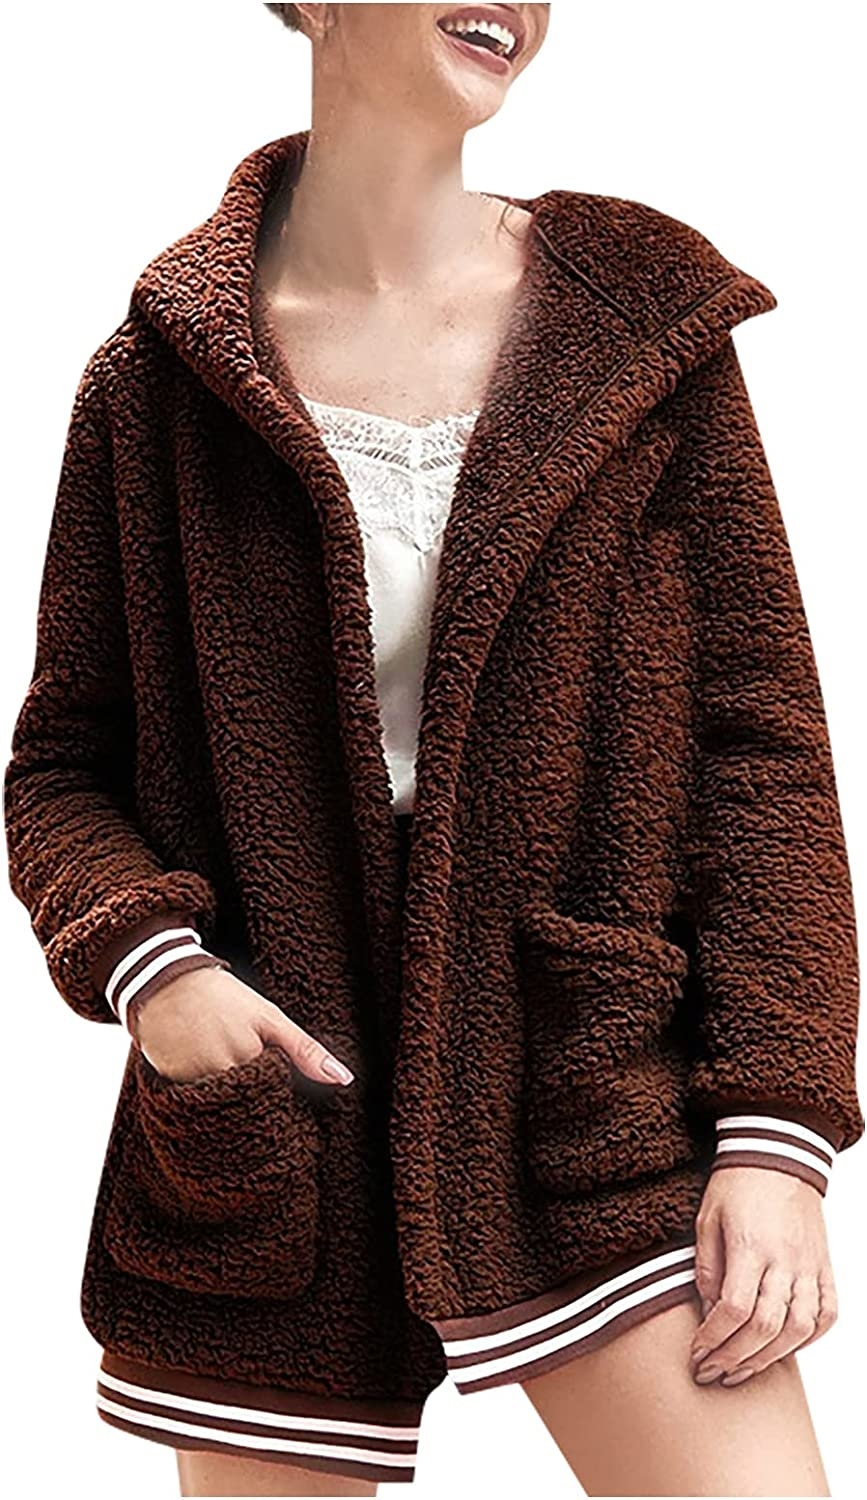 Shaloly Women's Autumn And Winter Loose Solid Color Stitching Long-Sleeved Pockets Plush Hooded Cardigan Coat